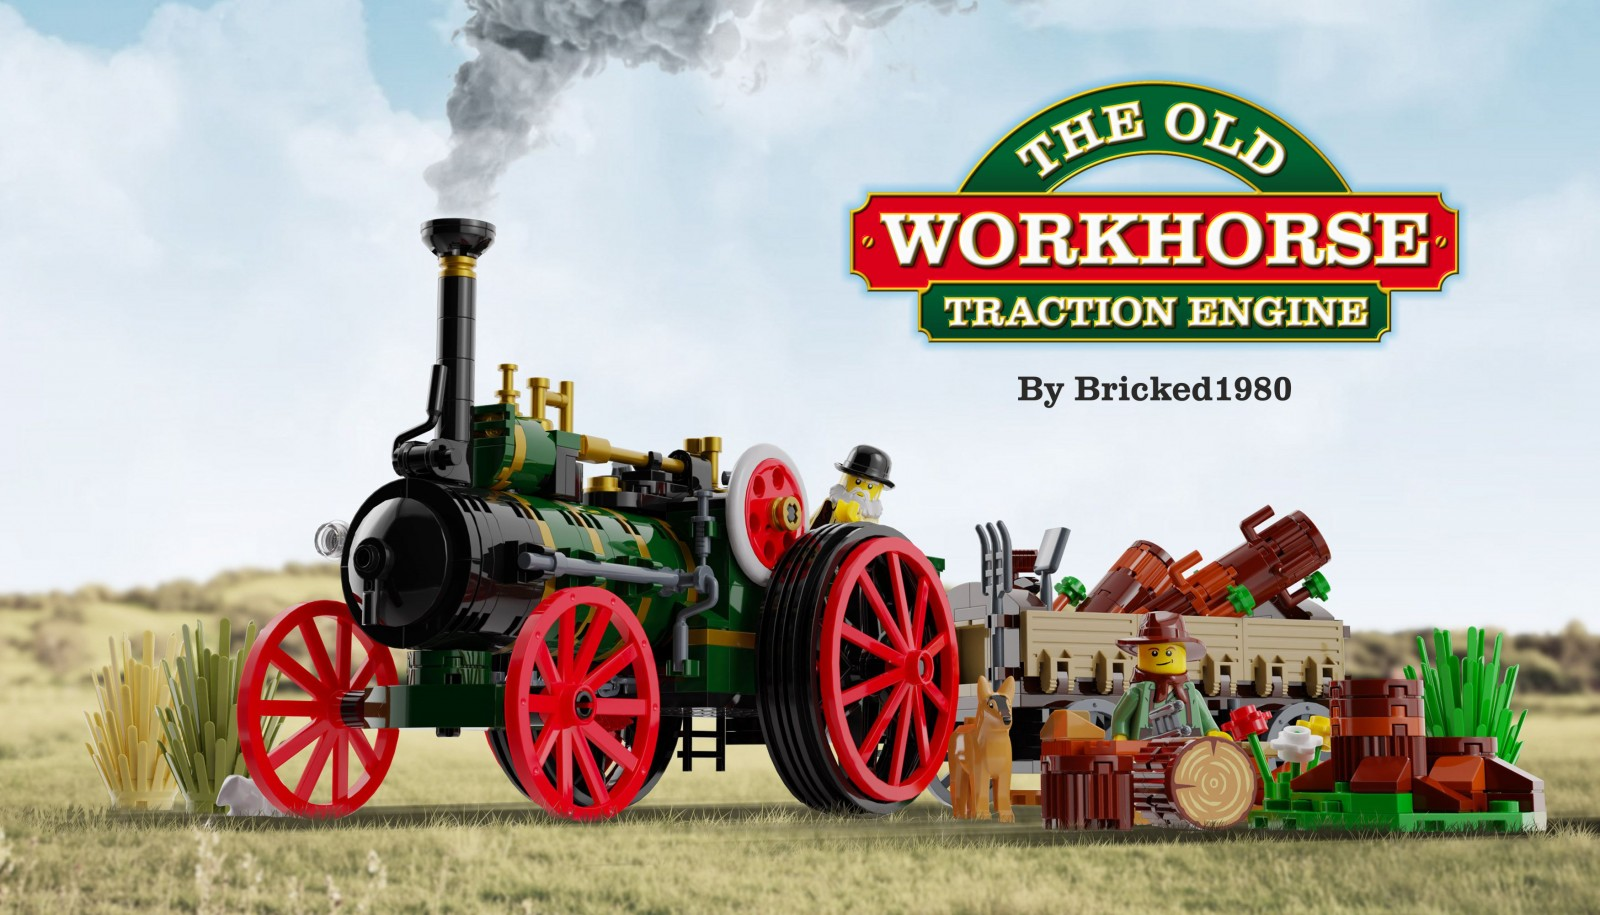 The Old Workhorse - Traction Engine